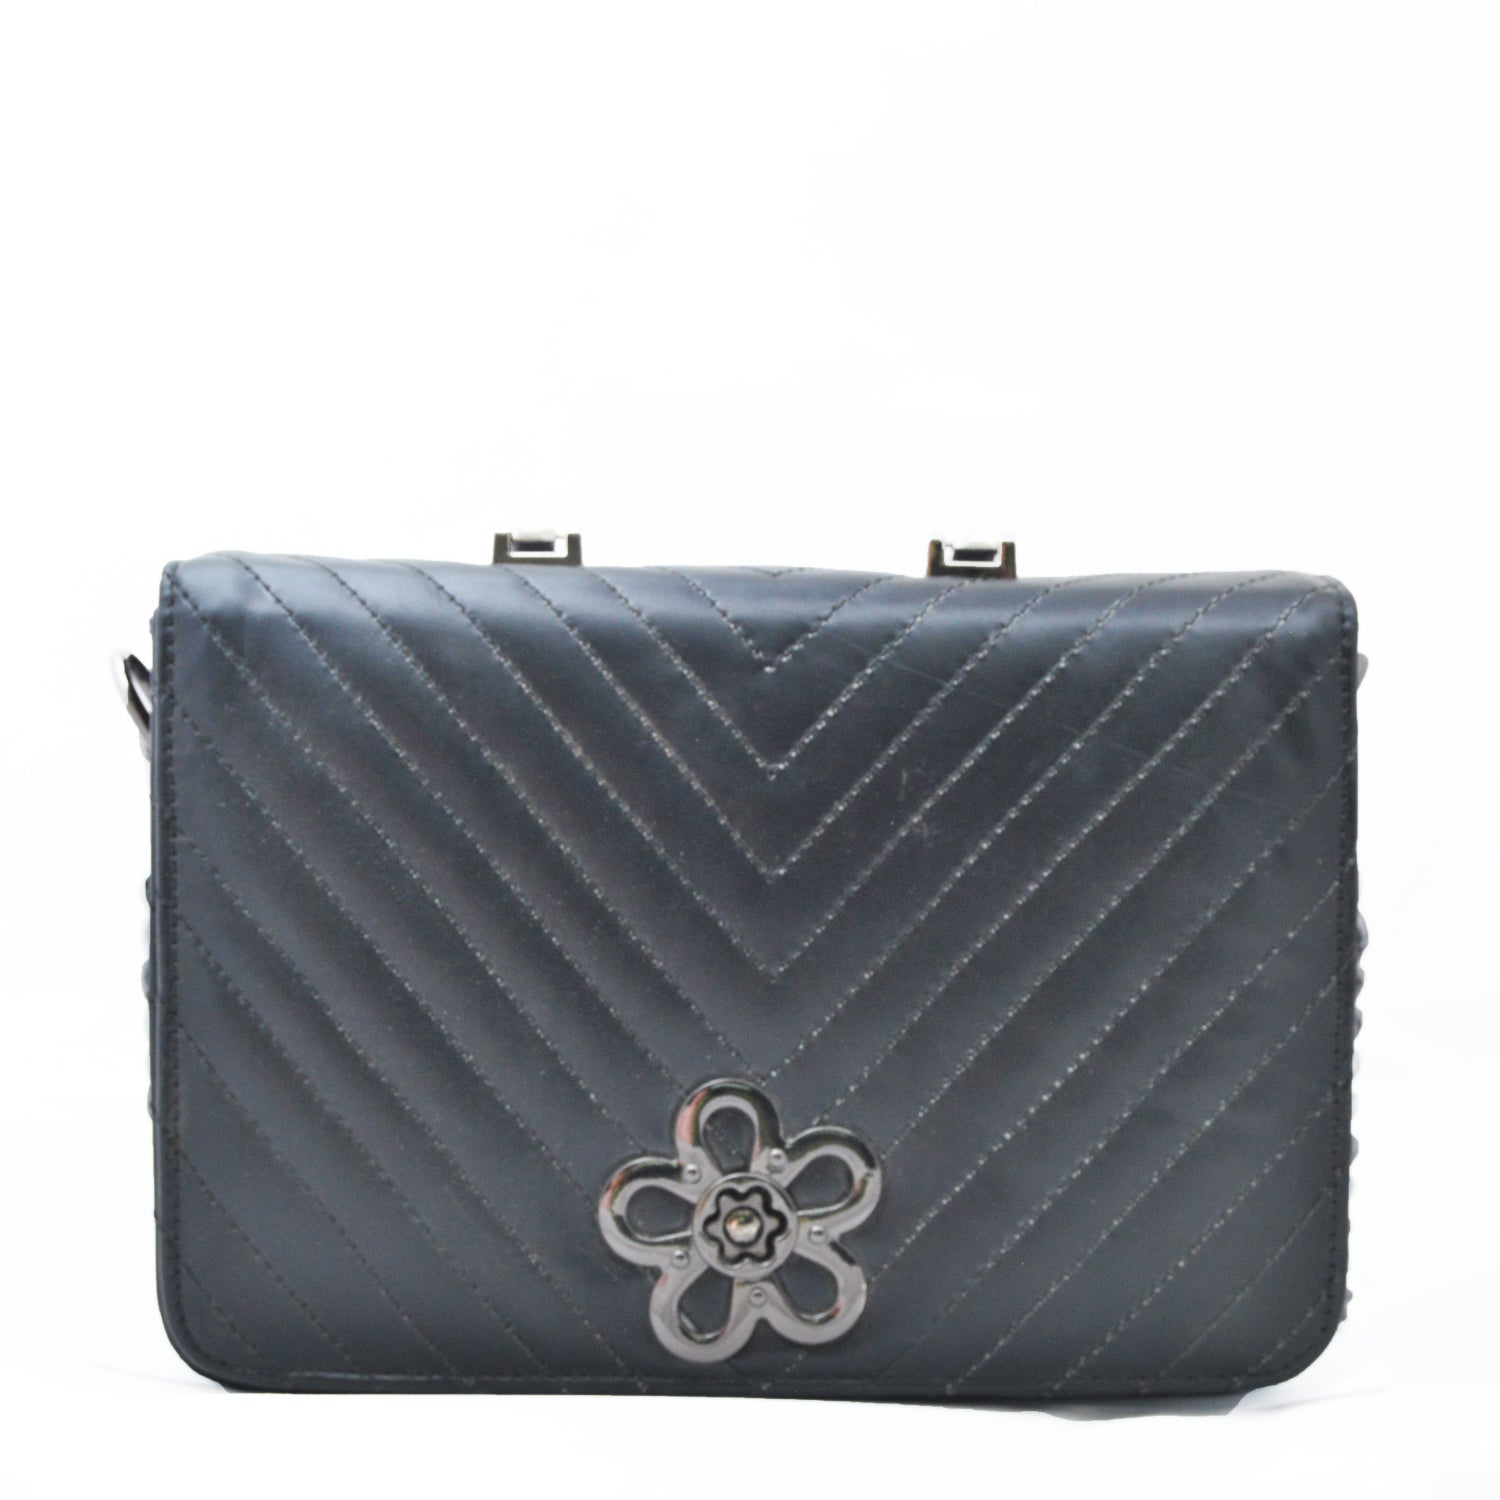 Flower Black Handbag